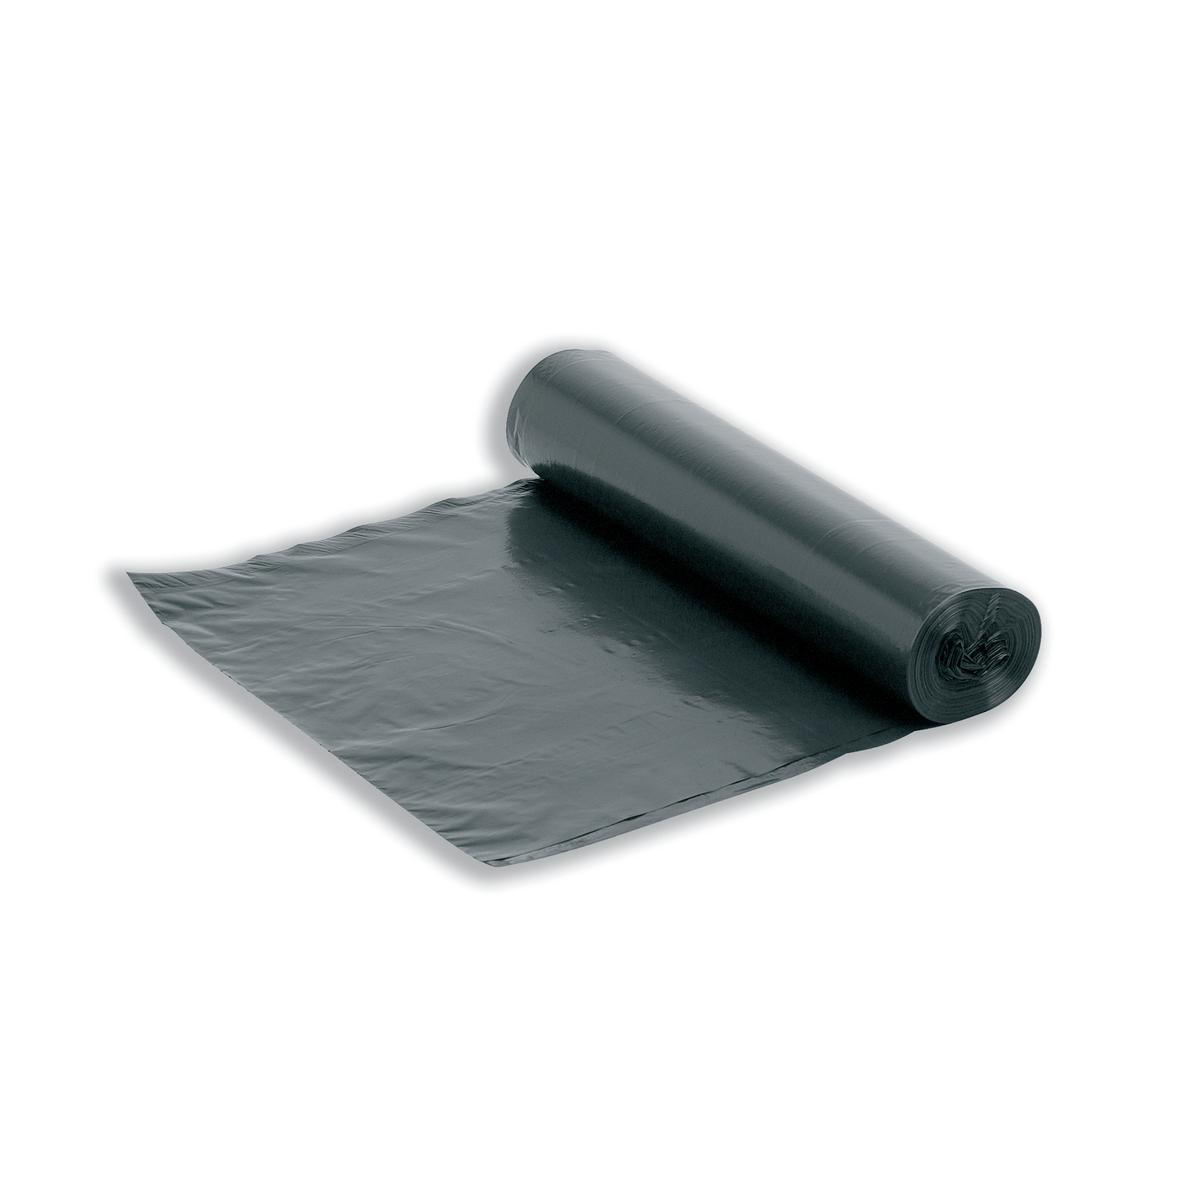 5 Star Blk Bin Liners Heavy Duty Roll300